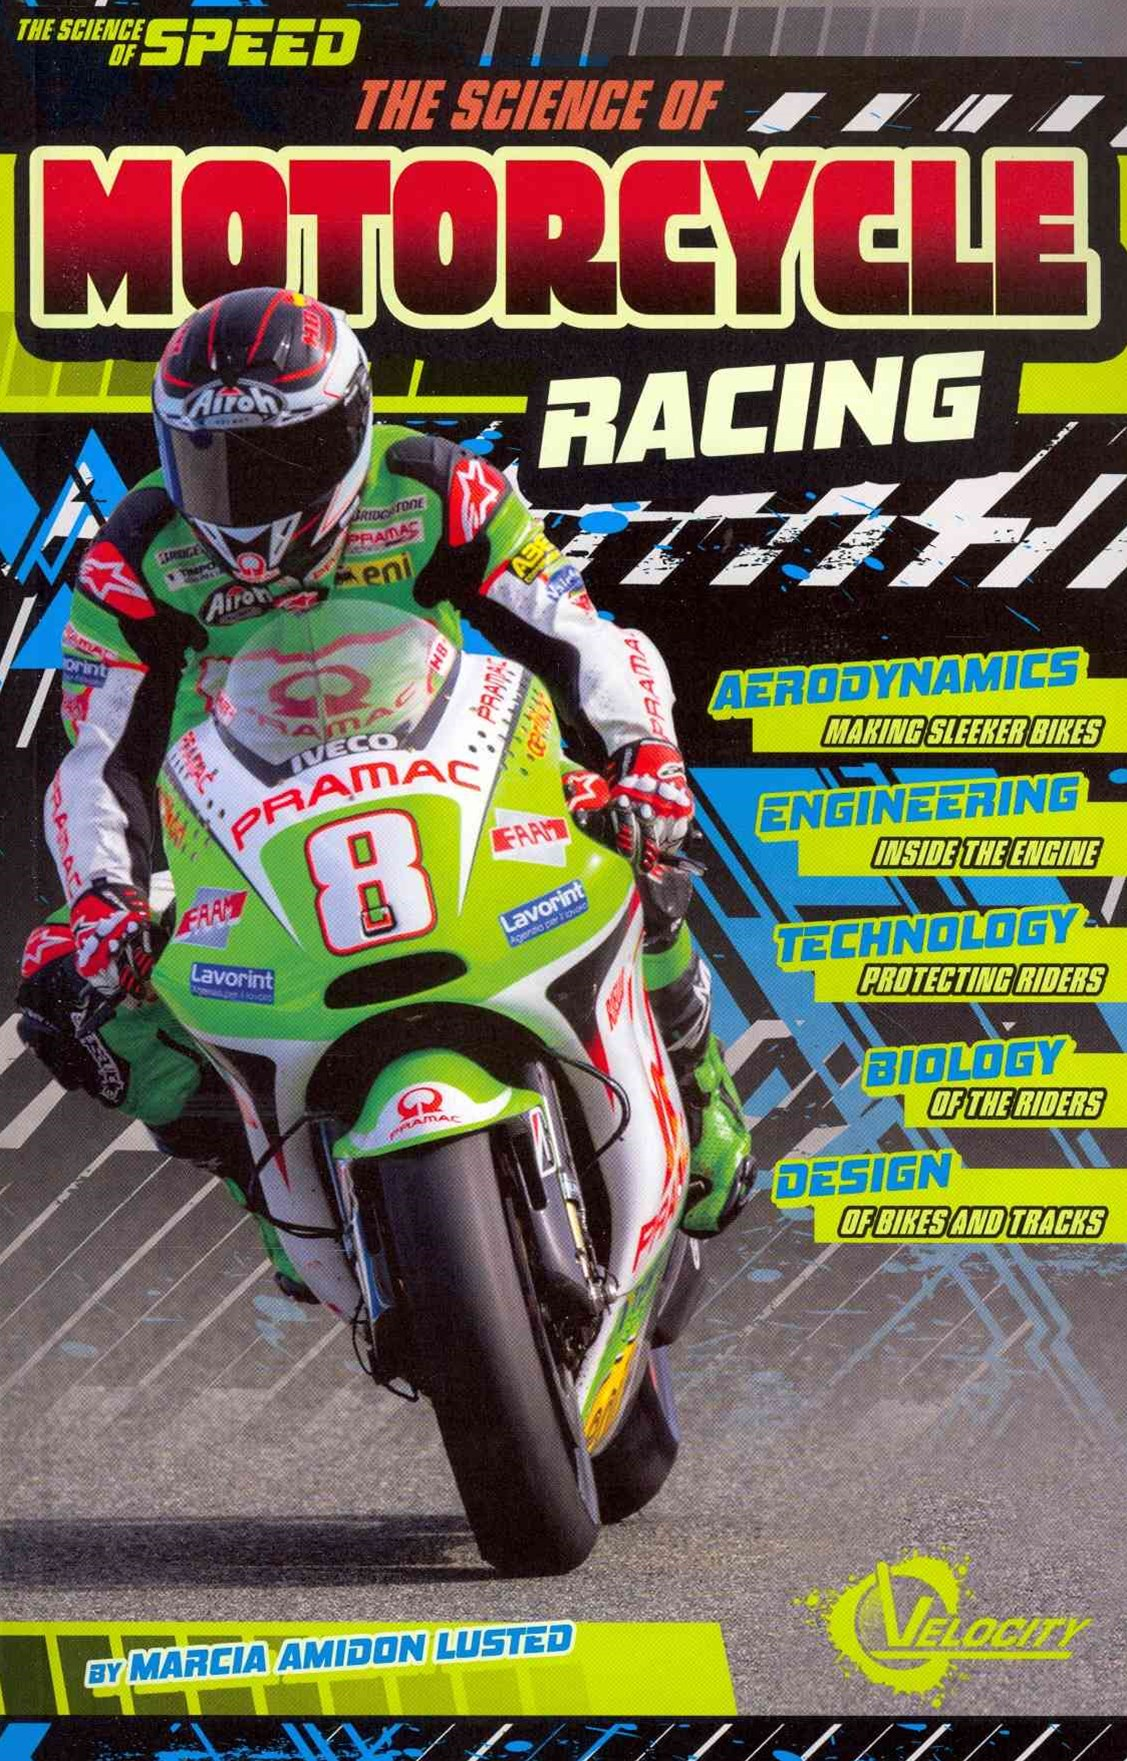 The Science of Motorcycle Racing